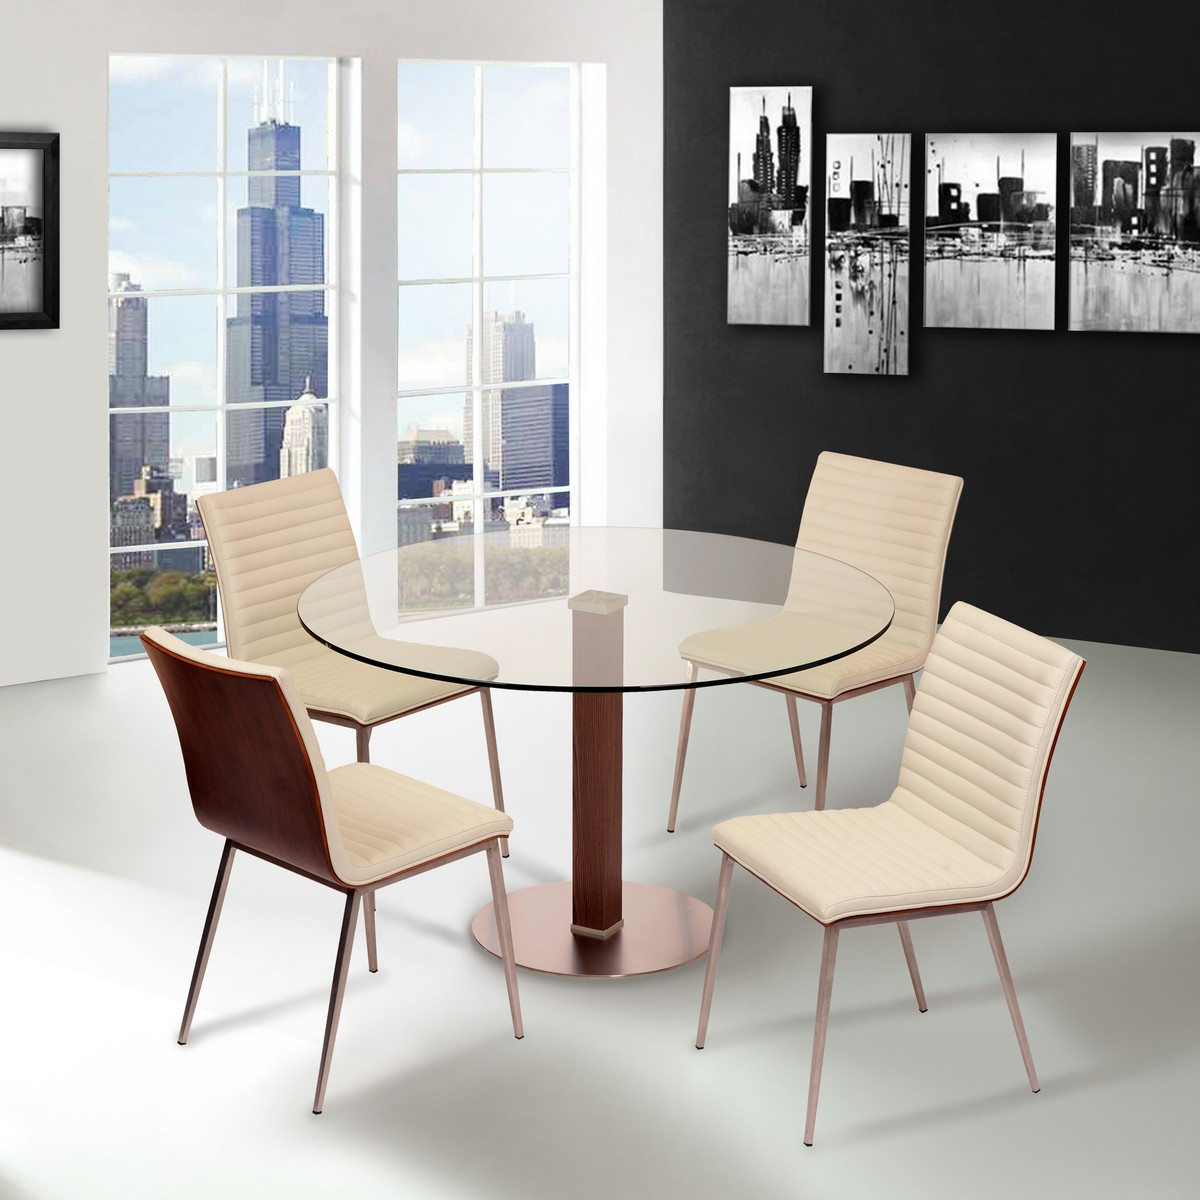 Armen Living Cafe Brushed Stainless Steel Dining Chair in White Leatherette with Walnut Back